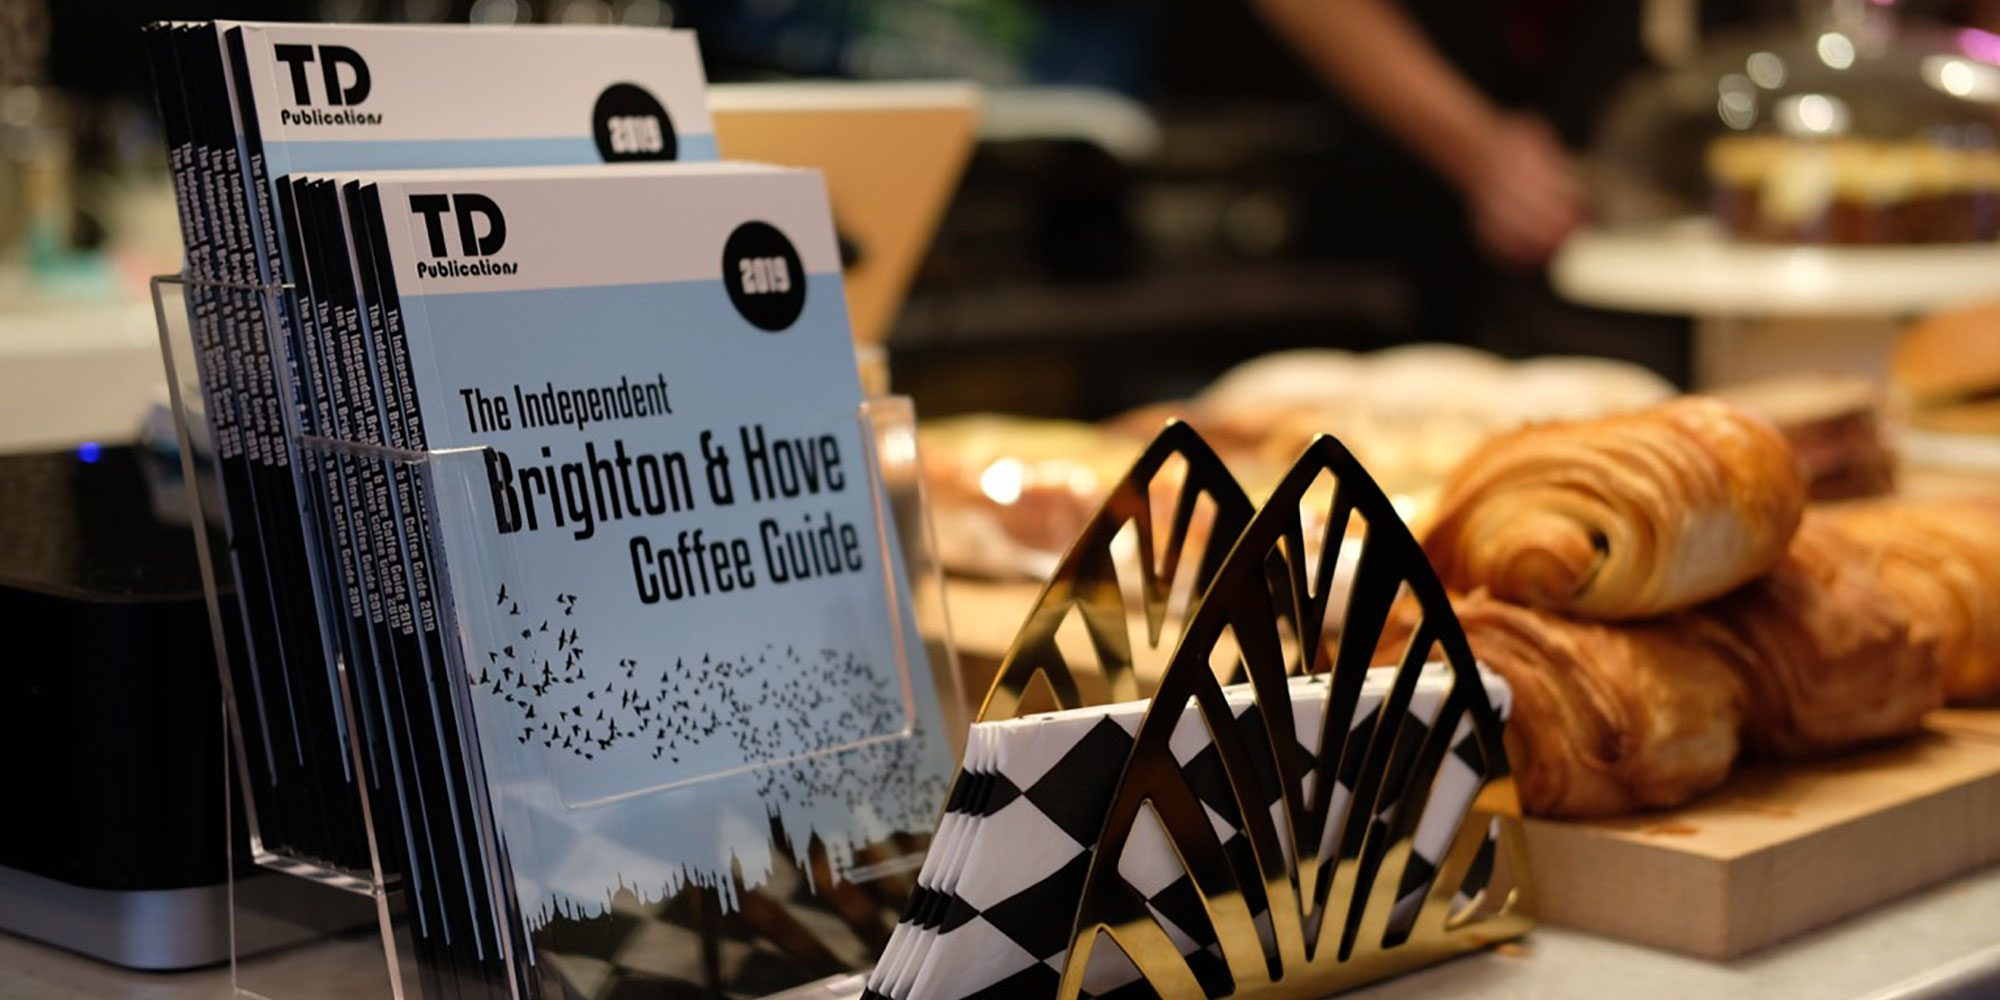 The Independent Brighton & Hove Coffee Guide